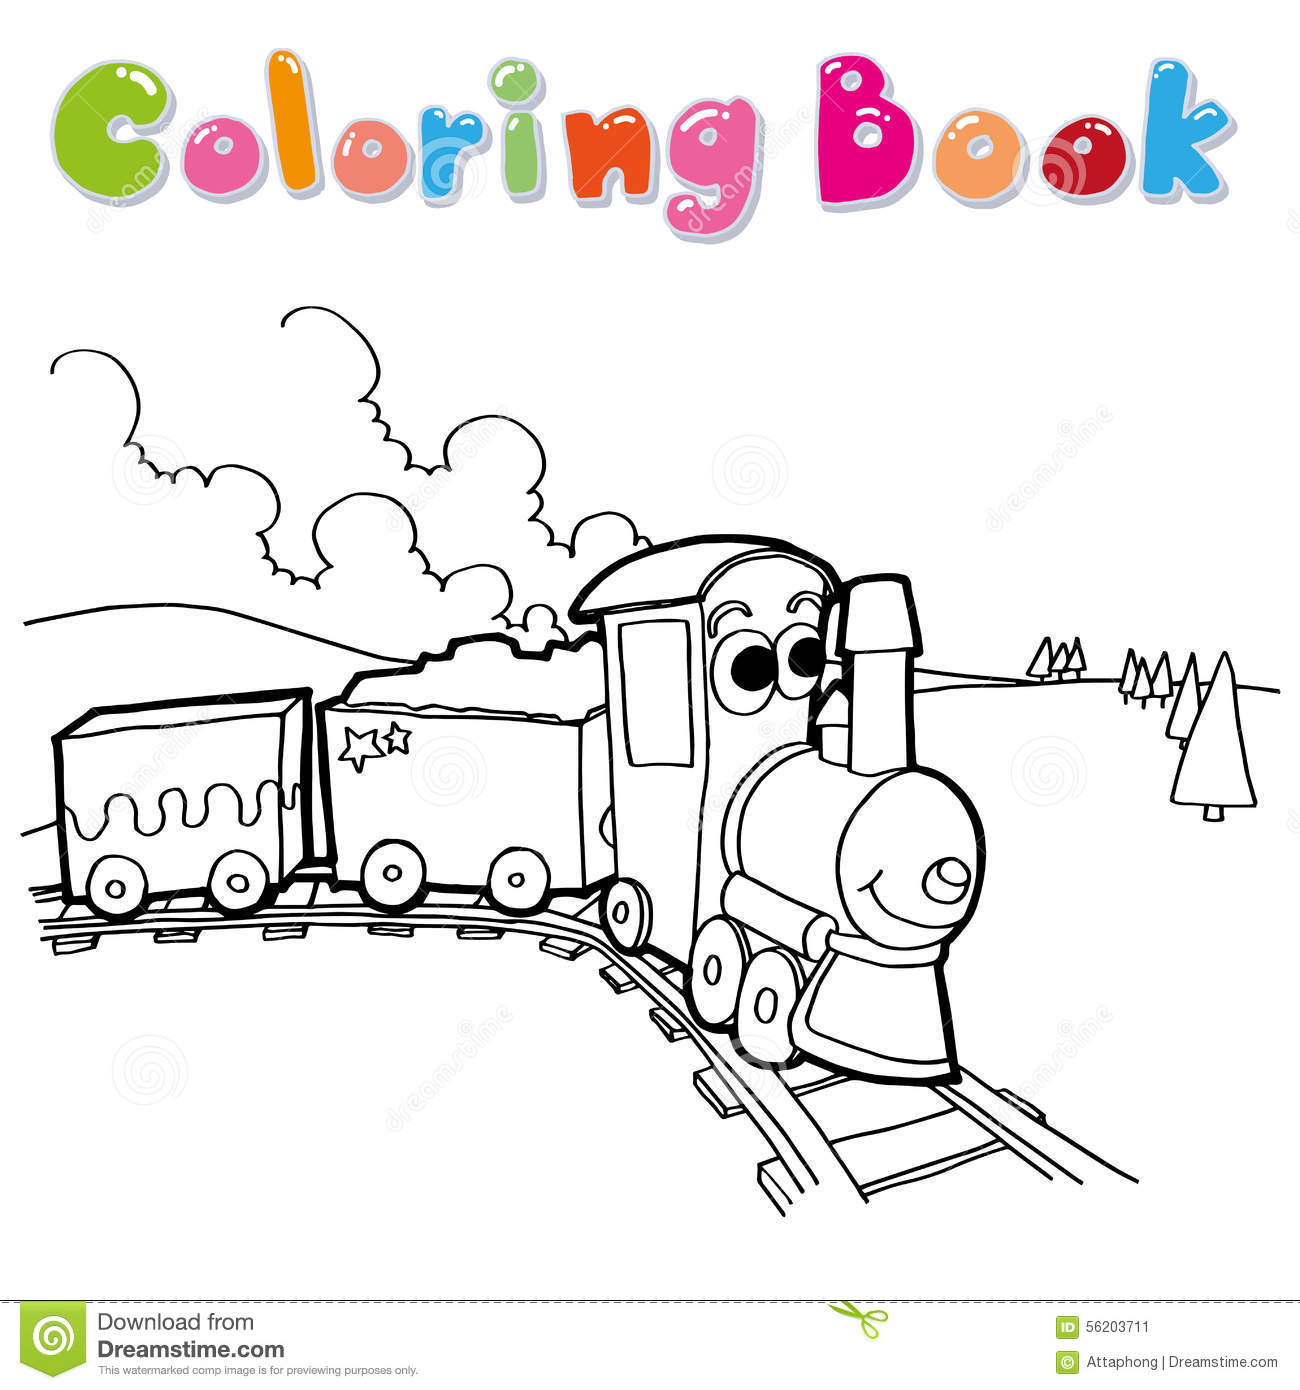 Train coloring page vector stock vector. Illustration of cute ...